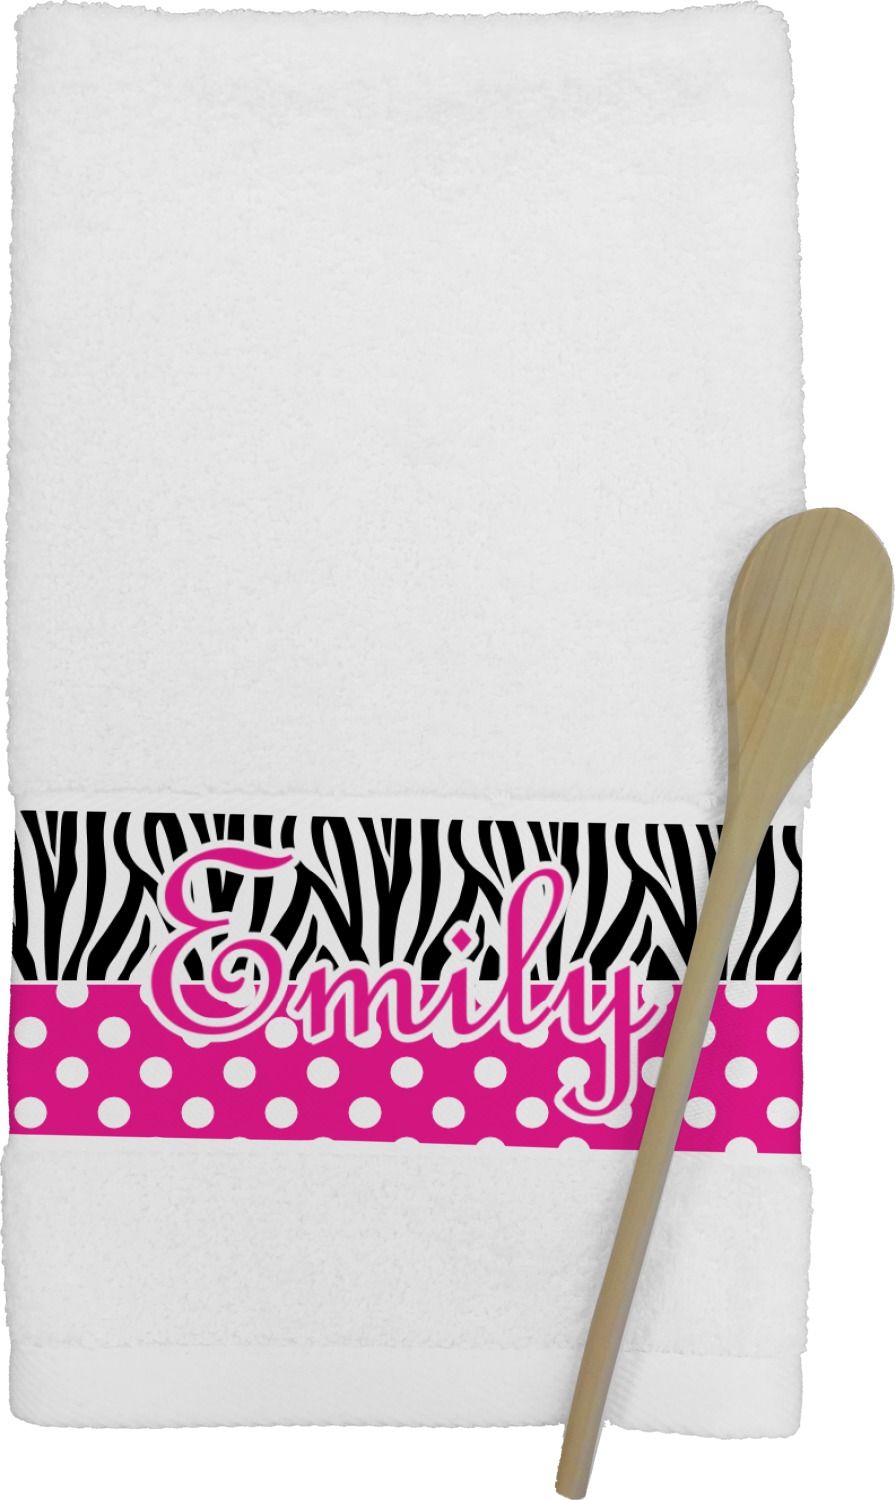 Zebra Print Polka Dots Kitchen Towel Personalized Youcustomizeit